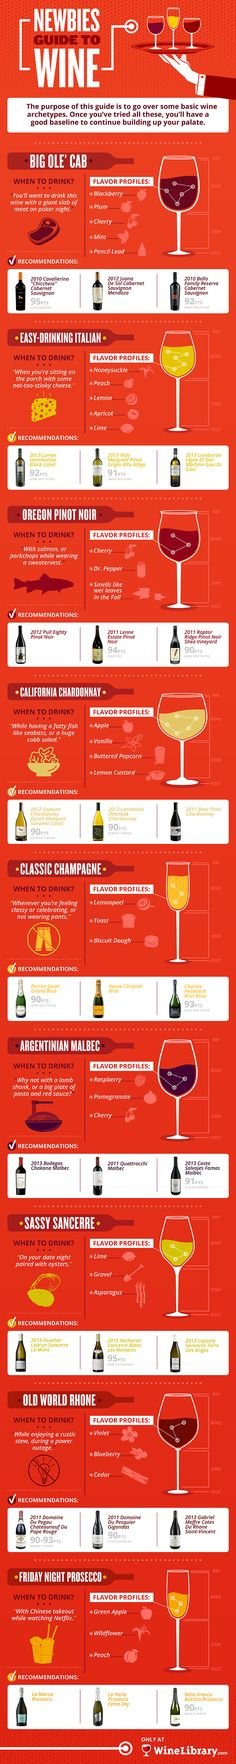 Go over some basic archetypes of wine that you'd do well to familiarize yourself with.